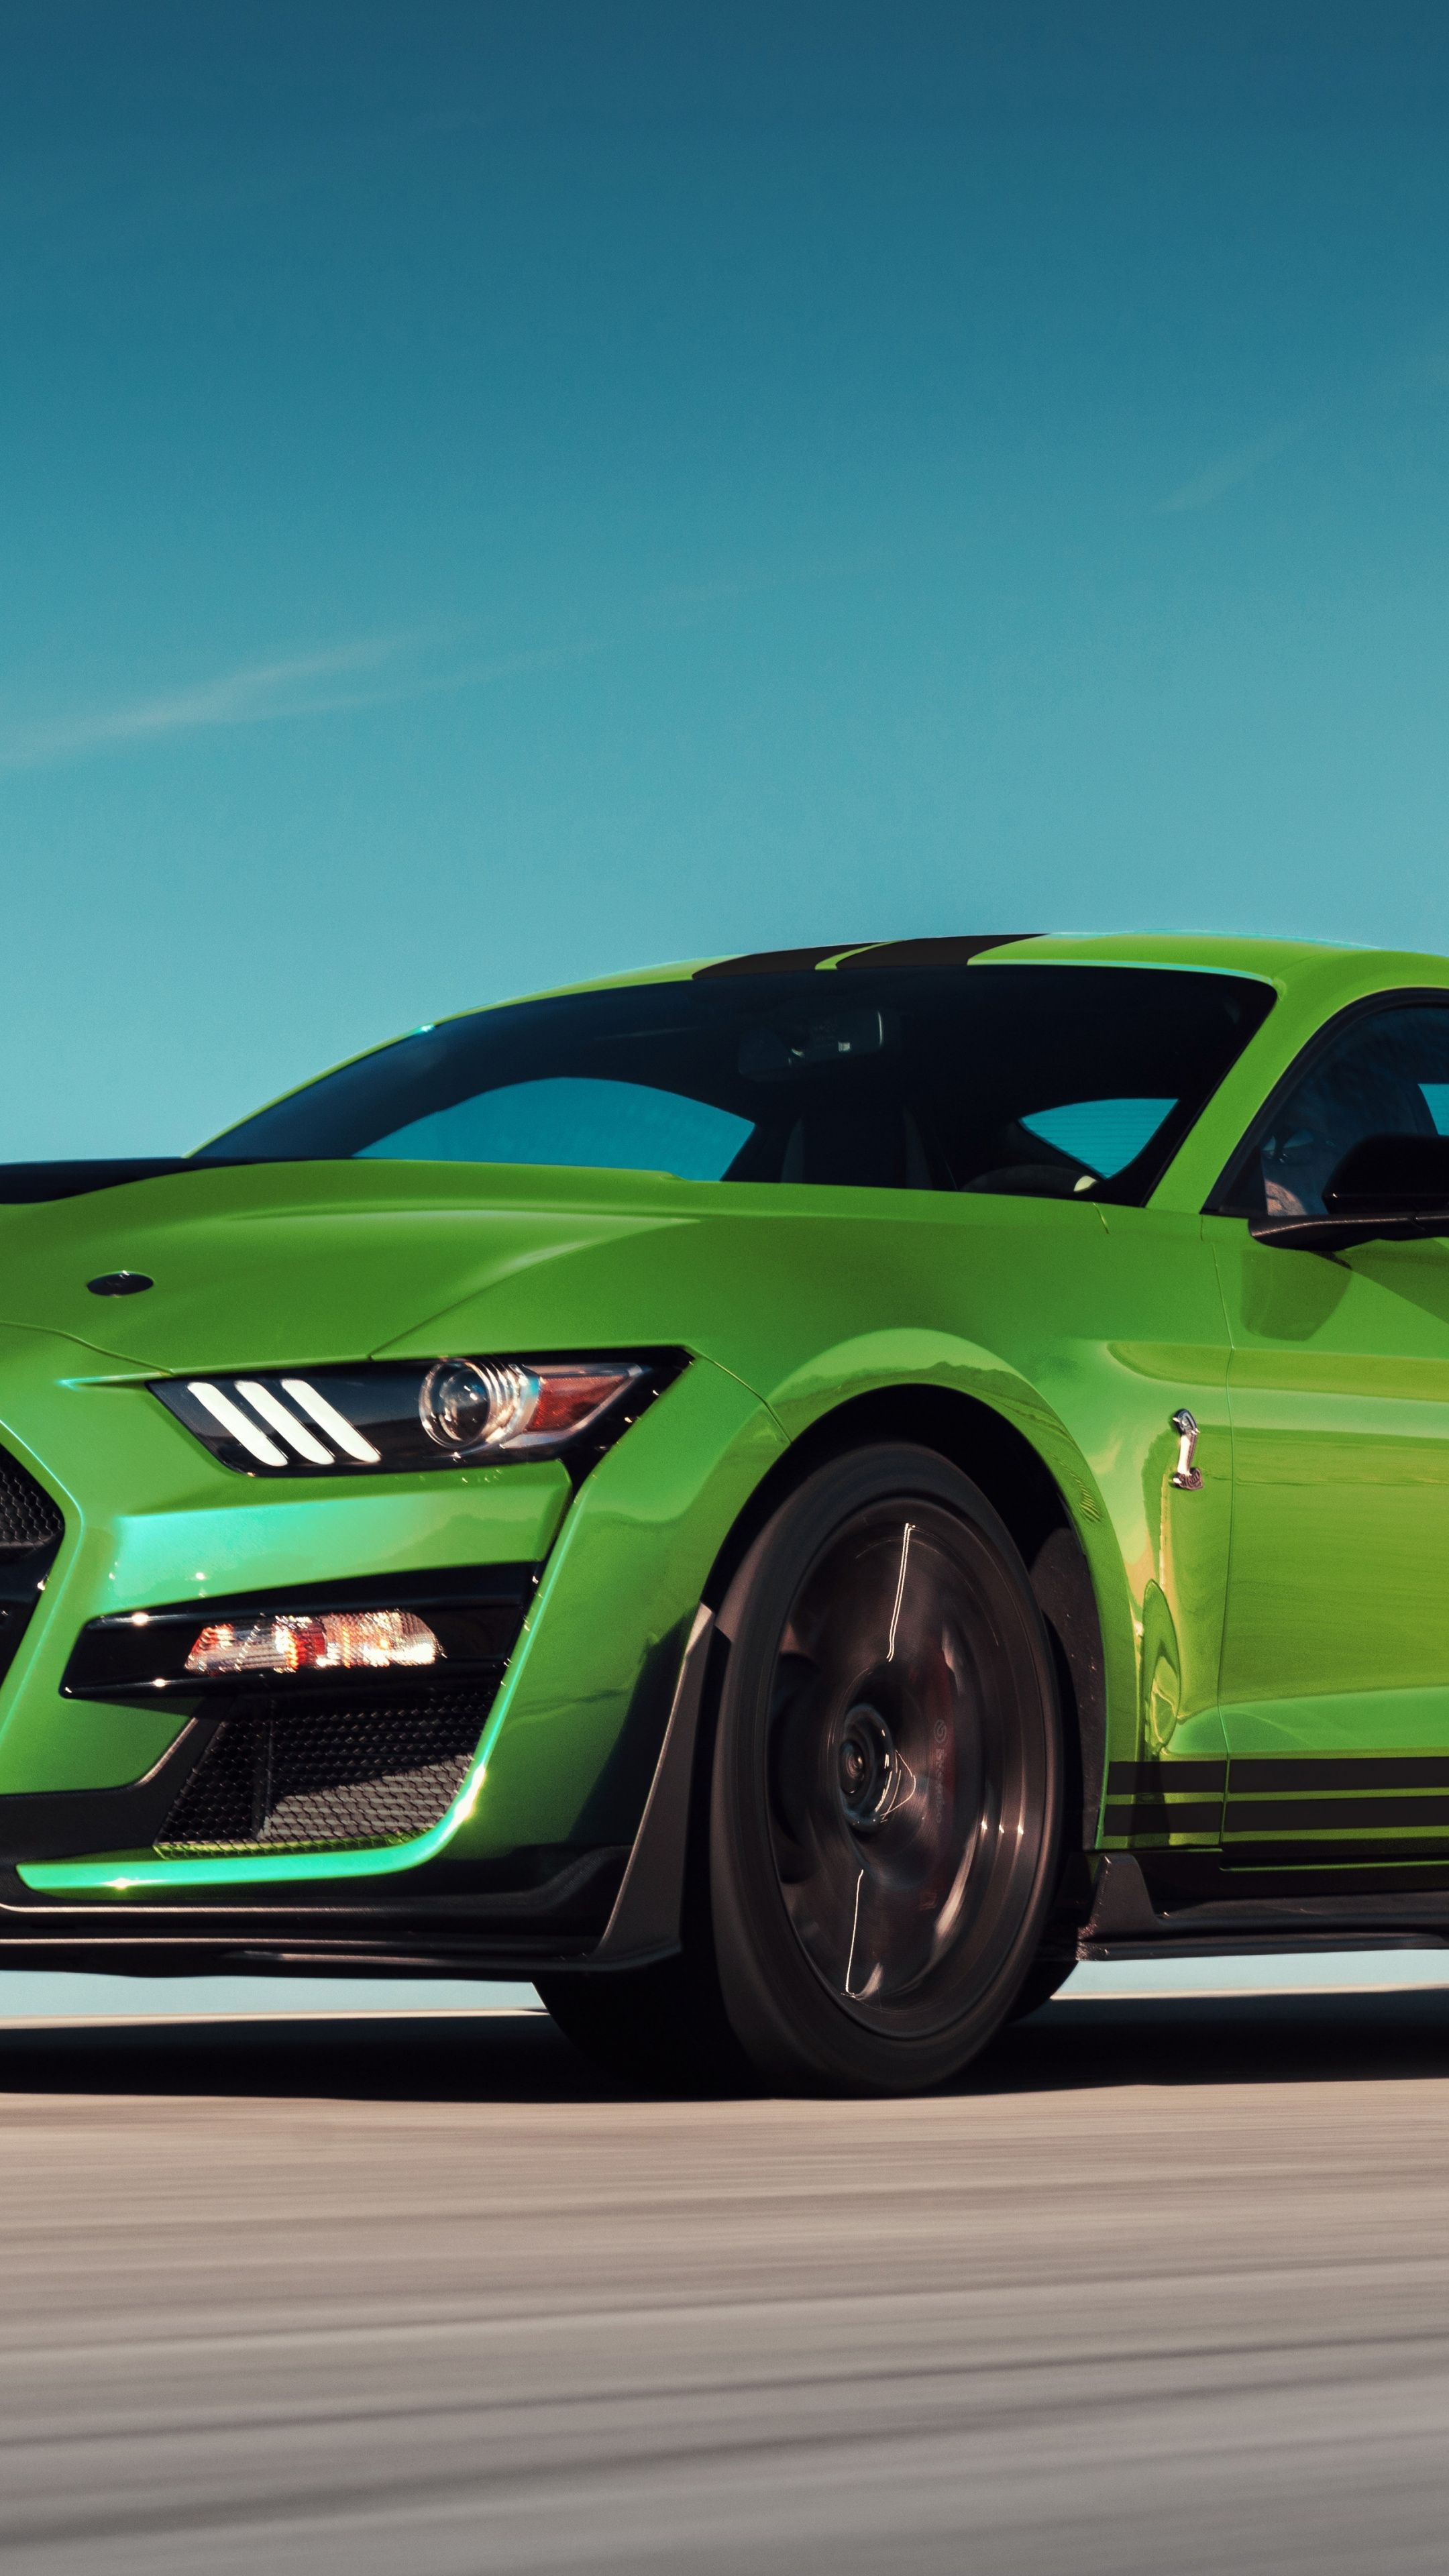 2160x3840 Green Ford Mustang Shelby Gt500 Wallpaper Mustang Shelby Ford Mustang Shelby Ford Mustang Shelby Gt500